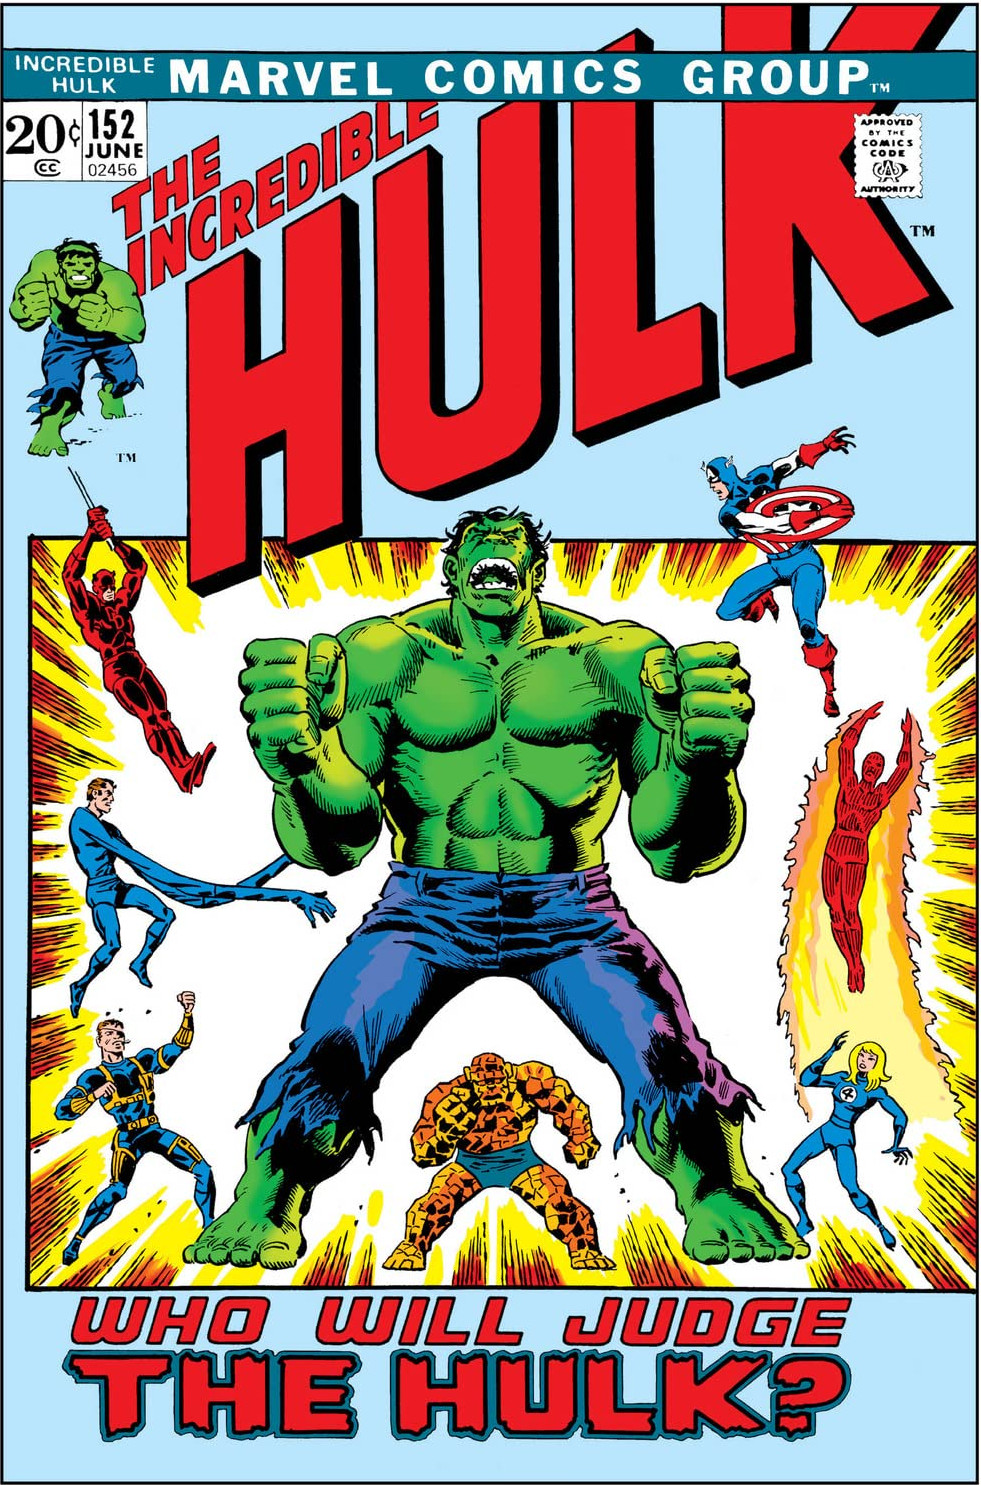 Incredible Hulk Vol 1 152